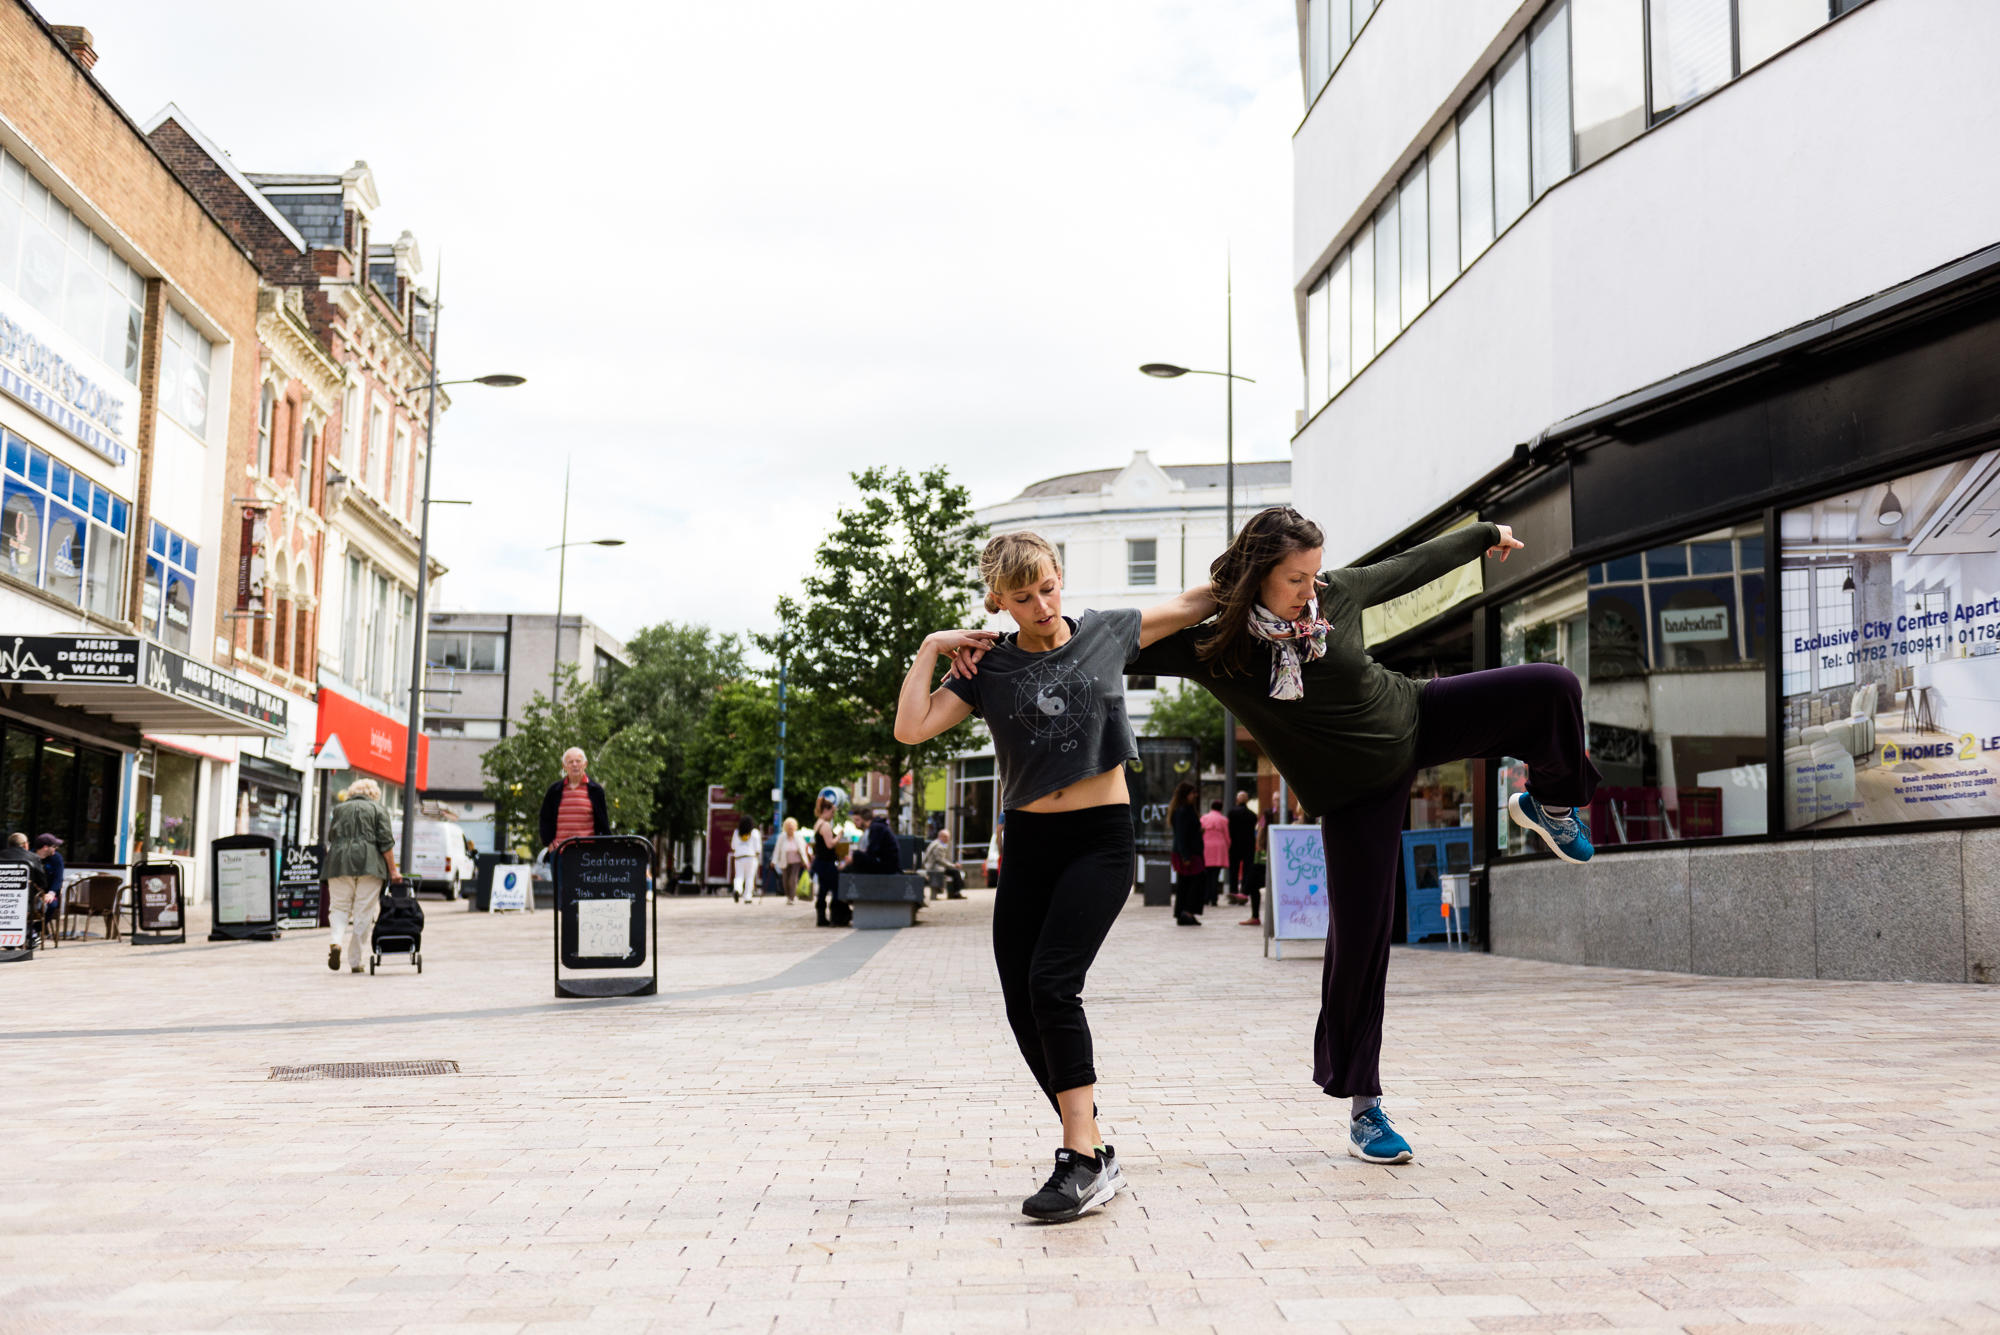 Restoke - Big Dance Rehearsal - Dance Fridays - Dancing in the Street - The Regent Theatre,  Picadilly, Hanley - Documentary Photography by Jenny Harper-6.jpg